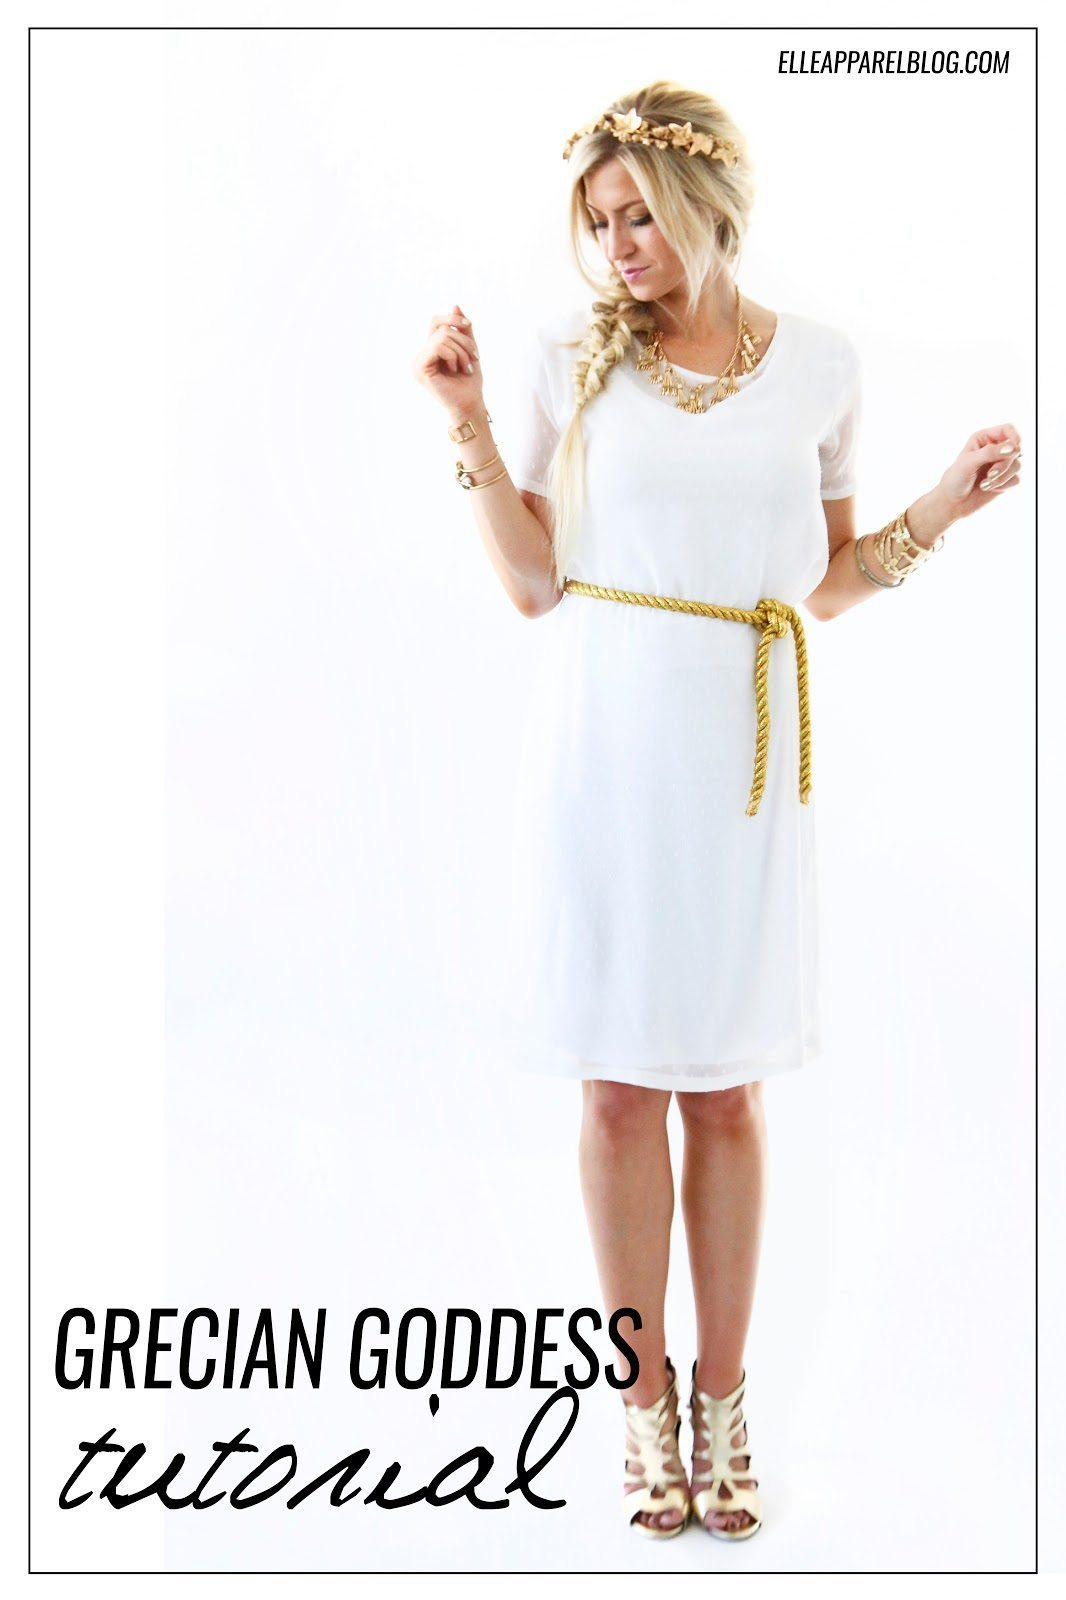 THE MODERN GIRLS HALLOWEEN WEEK: GRECIAN GODDESS COSTUME